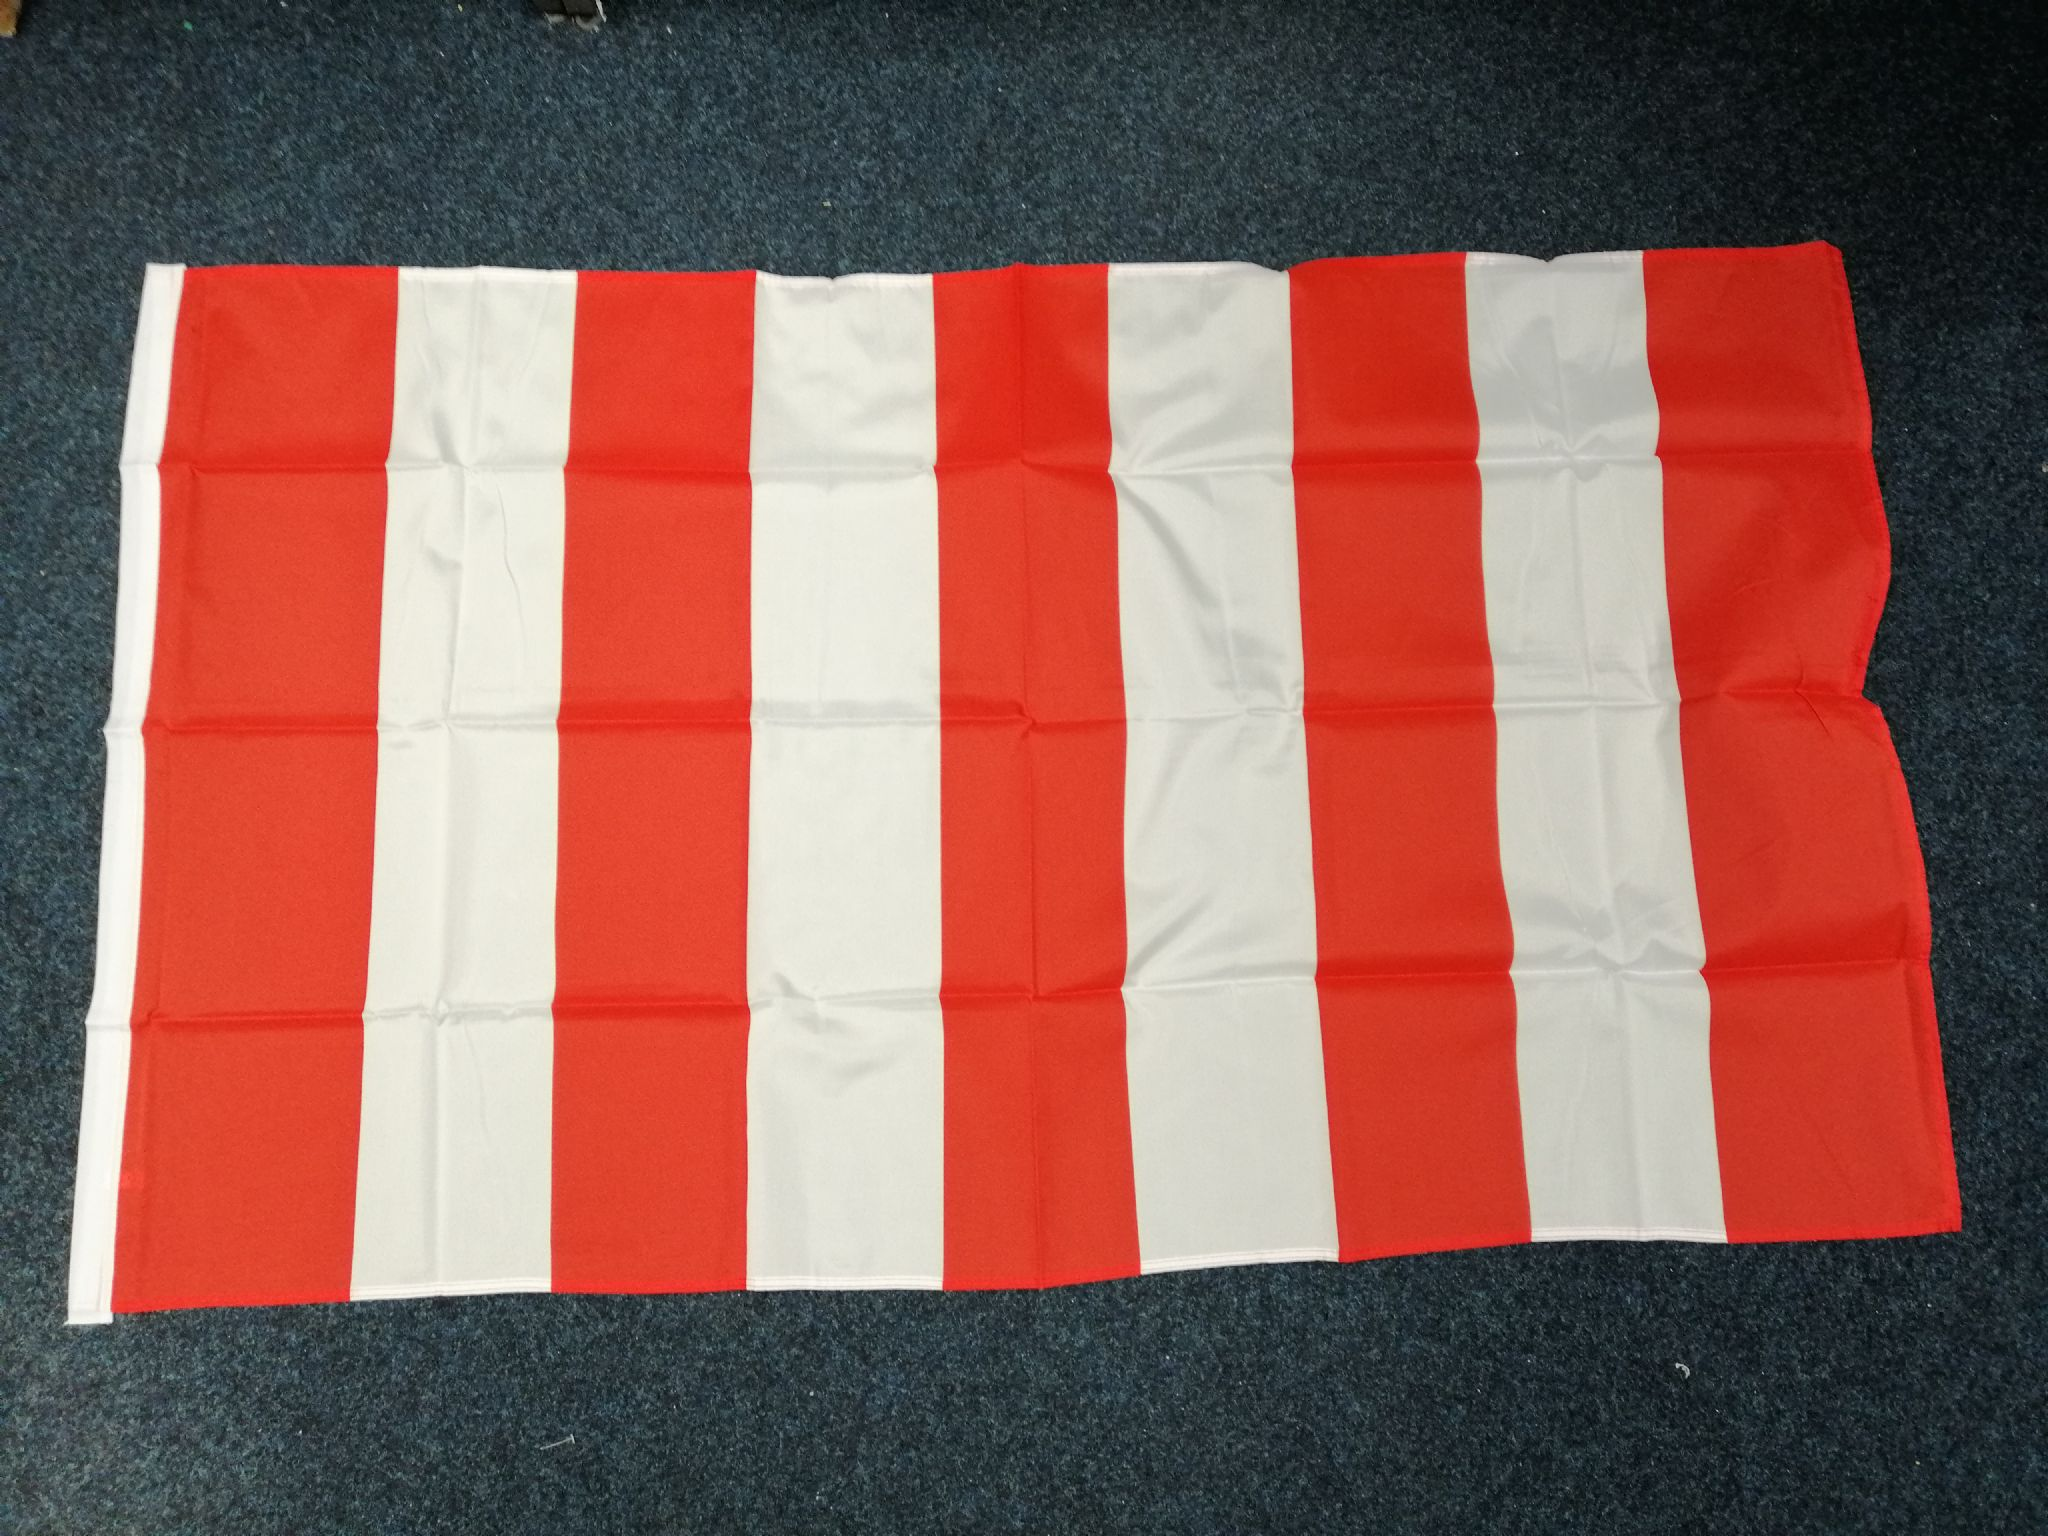 HAPPY BIRTHDAY YELLOW 5ft X 3ft Flag 75d with eyelets suitable for Flagpoles